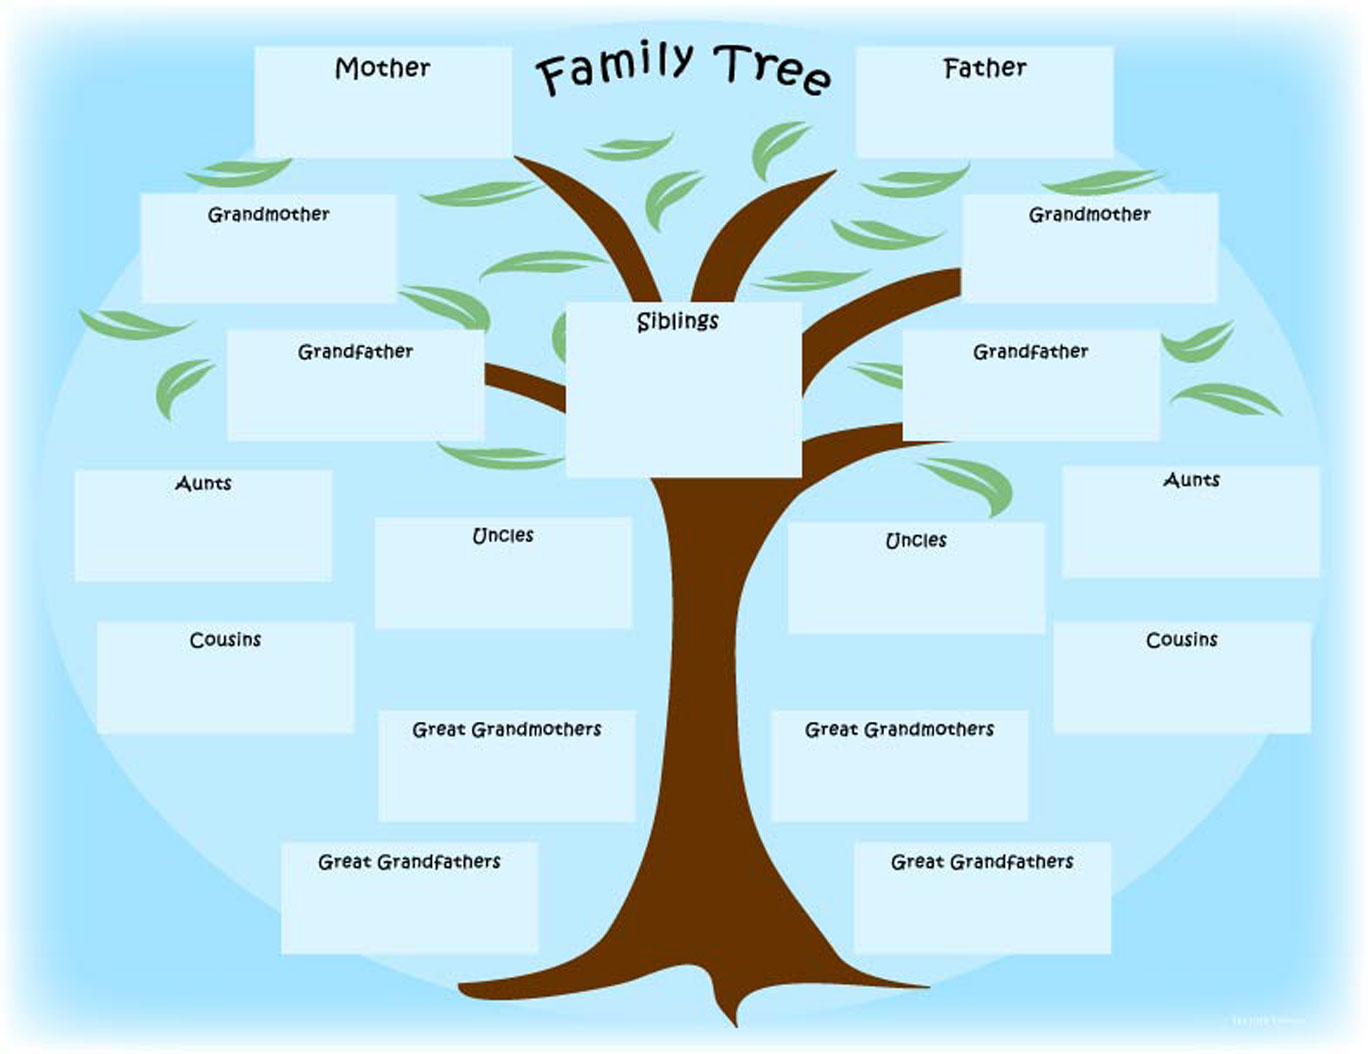 Worksheets Family Tree Worksheet For Kids printable family tree sheets daway dabrowa co sheets